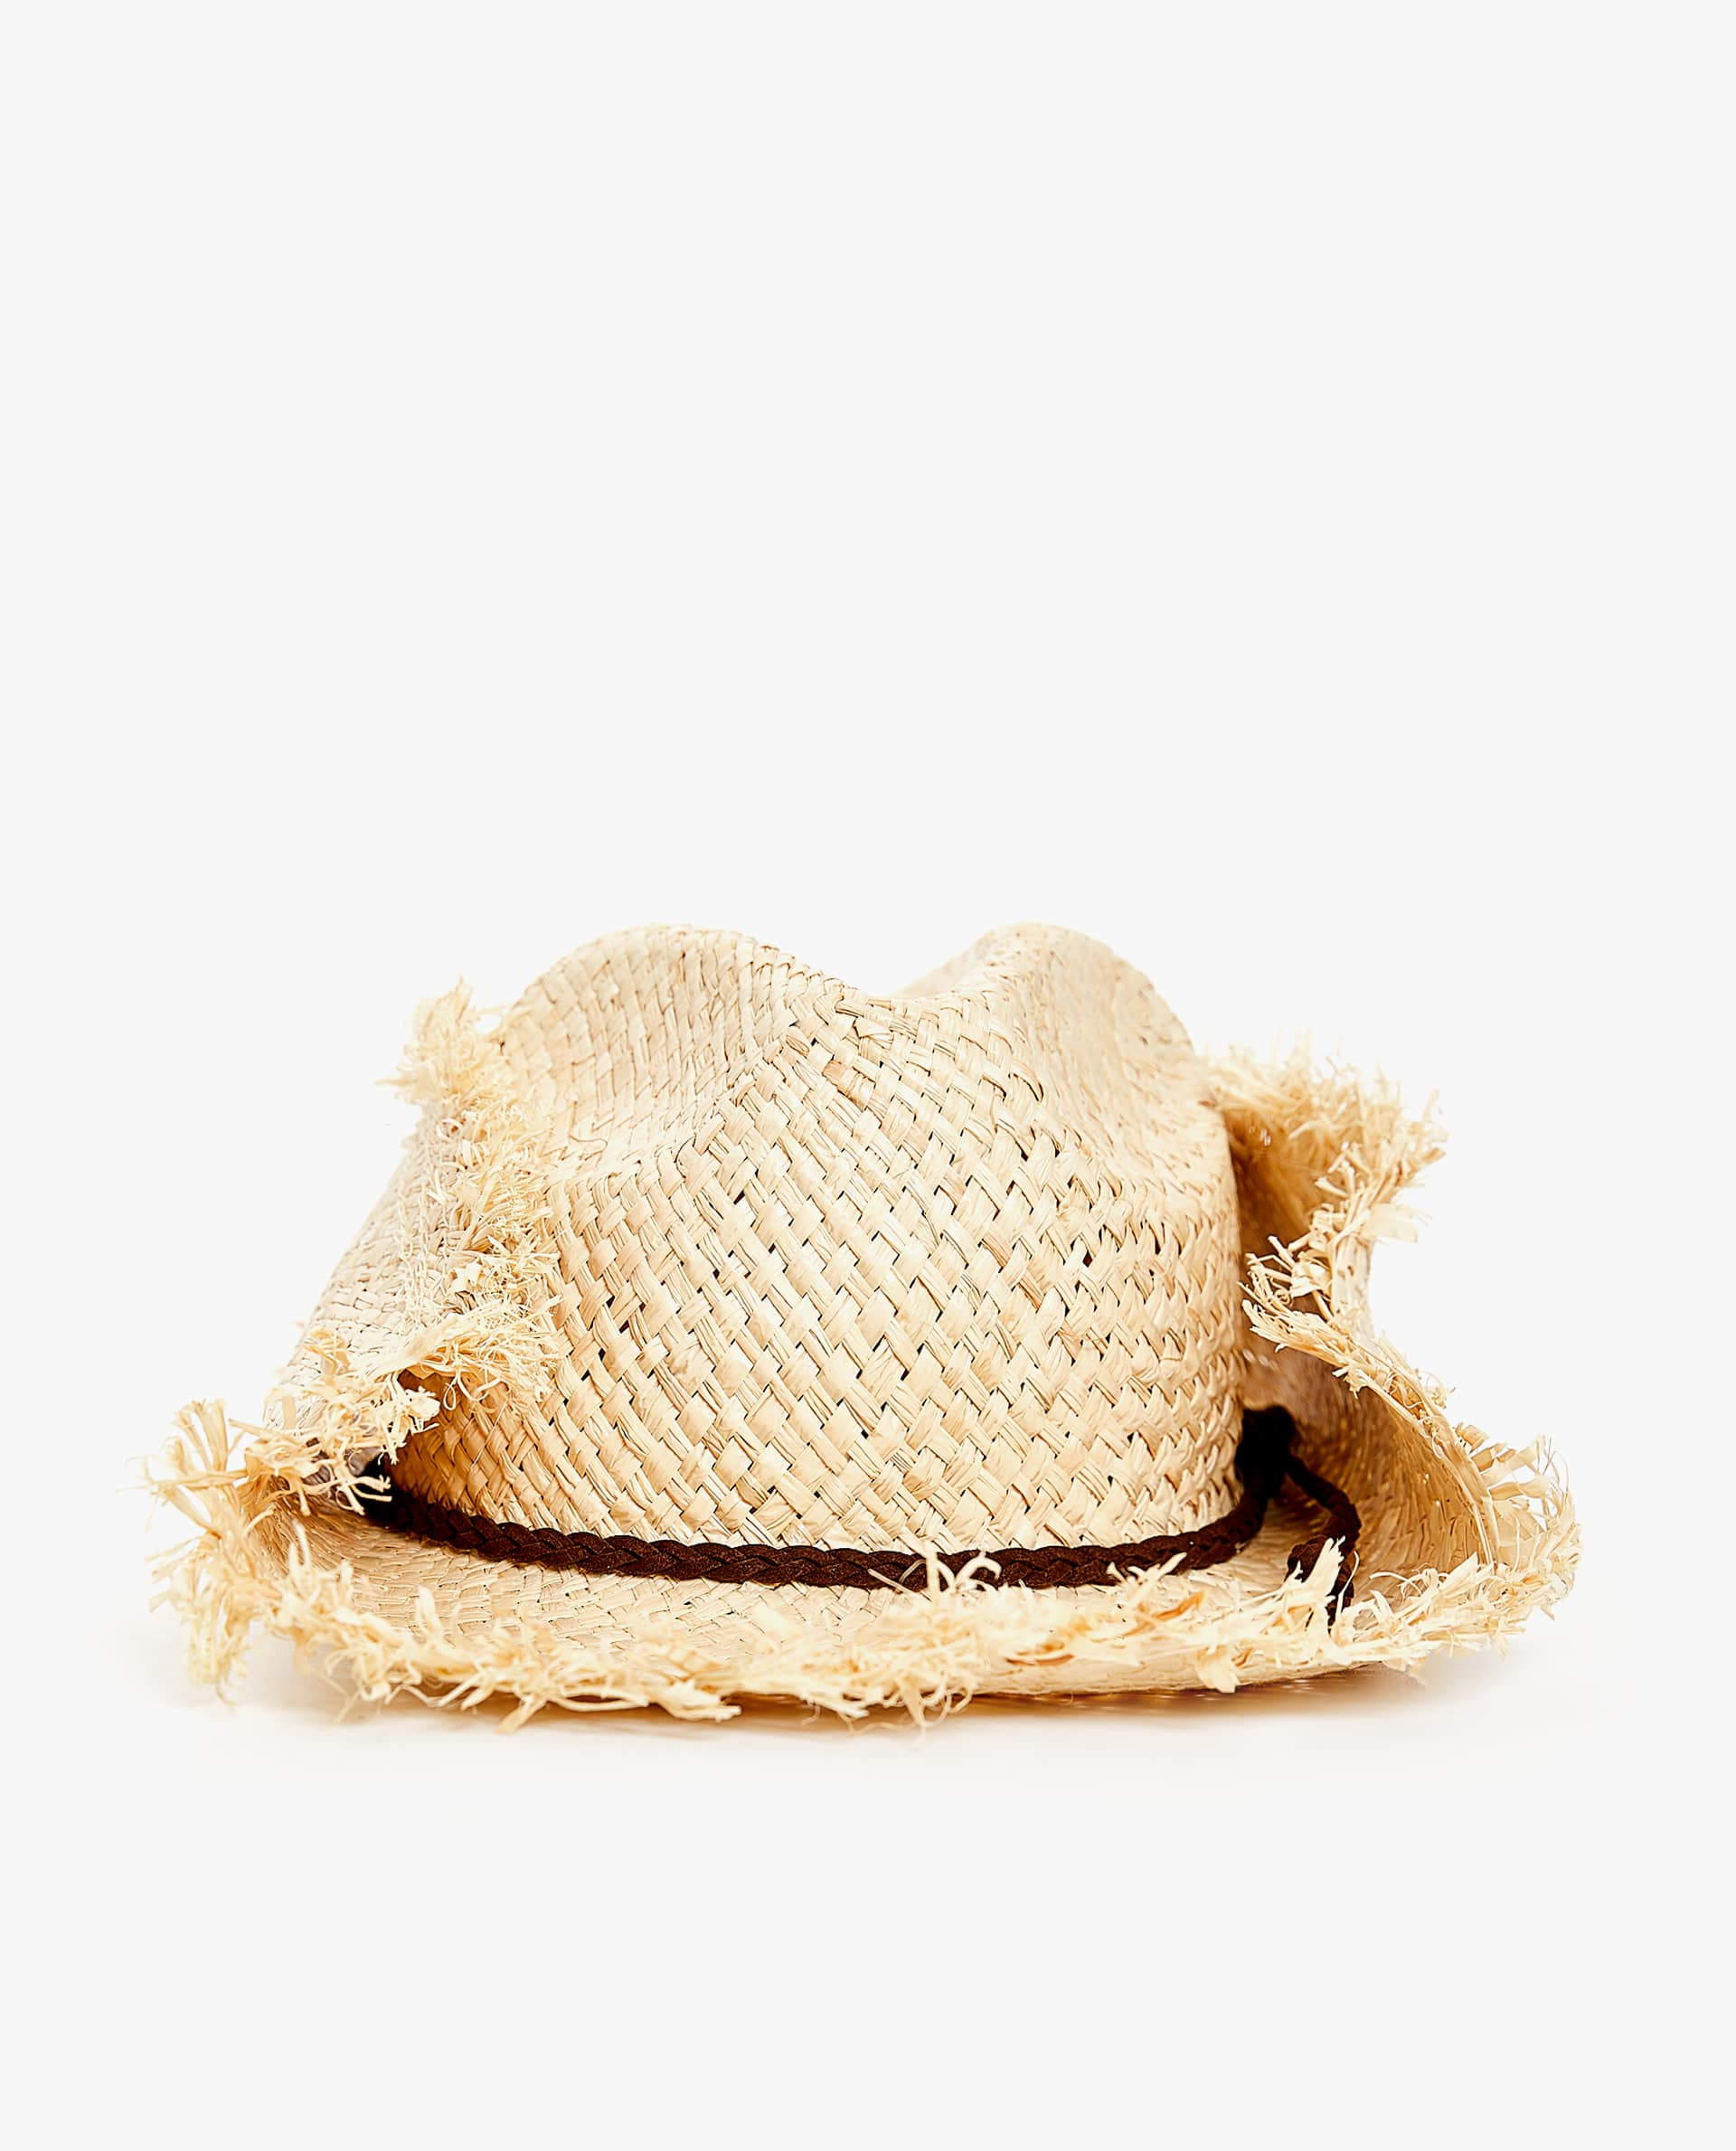 0ba13aa2 NATURAL RAFFIA HAT - KIDS 1 - 5 YEARS - CLOTHING & FOOTWEAR - KIDS ...